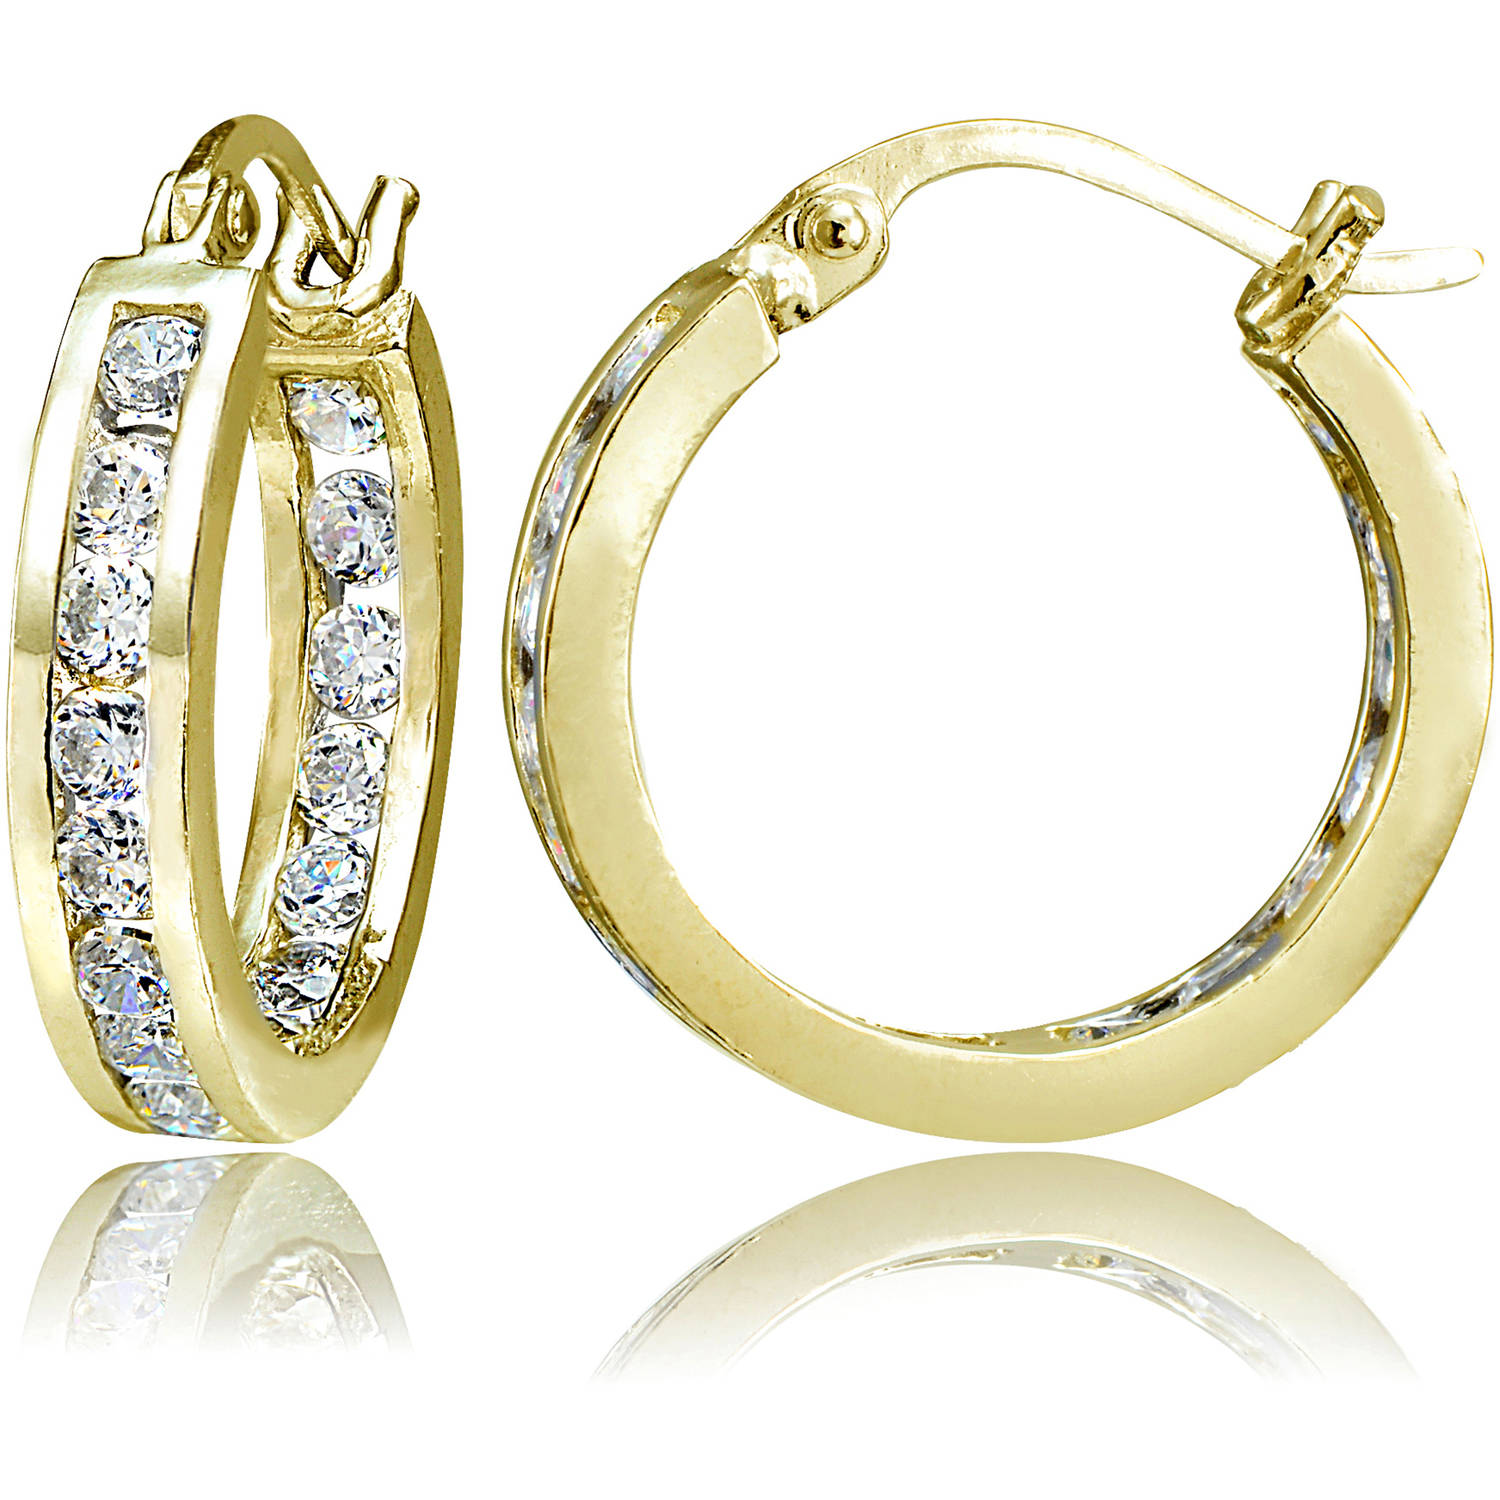 Chanel-Set CZ 14kt Yellow Gold over Sterling Silver Hoop Earrings